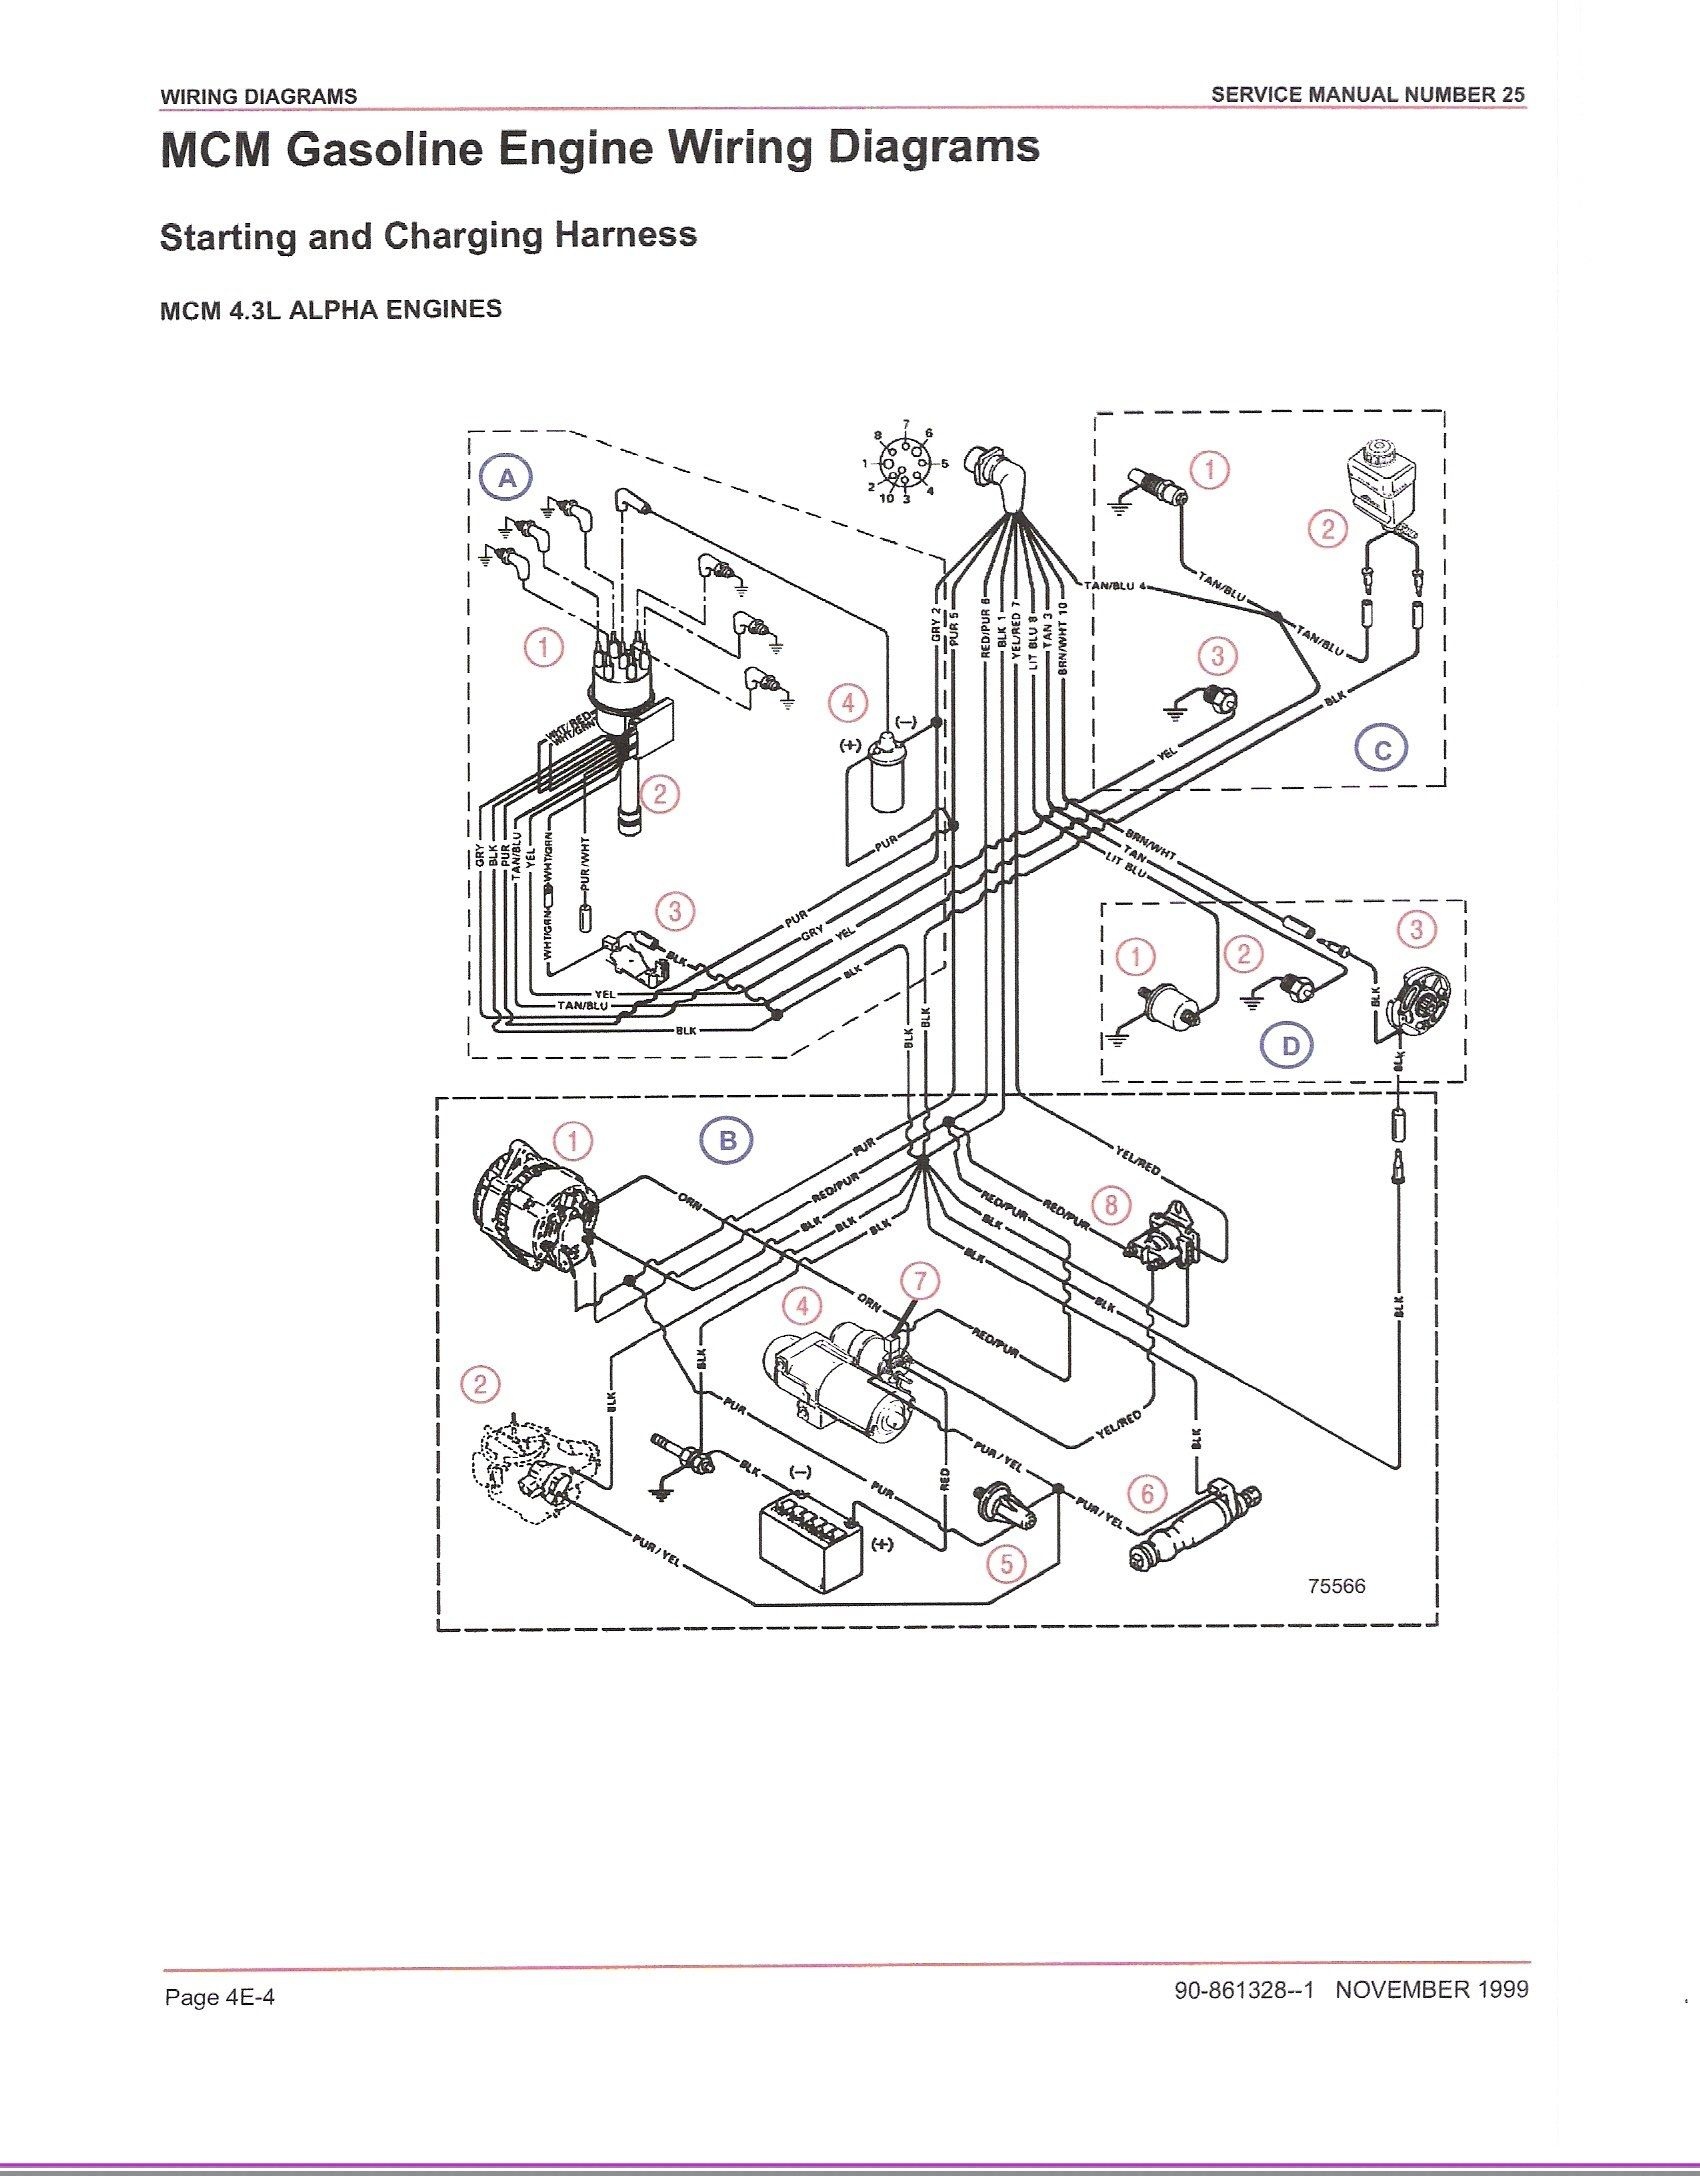 Omc 5 7 Wiring Diagram - Wiring Diagram Long Omc Engine Wiring Harness on omc cobra parts diagram, omc neutral safety switch, omc fuel tank, omc remote control, omc control box, omc oil cooler, omc cobra outdrive, omc inboard outboard wiring diagrams, omc voltage regulator, omc gauges,